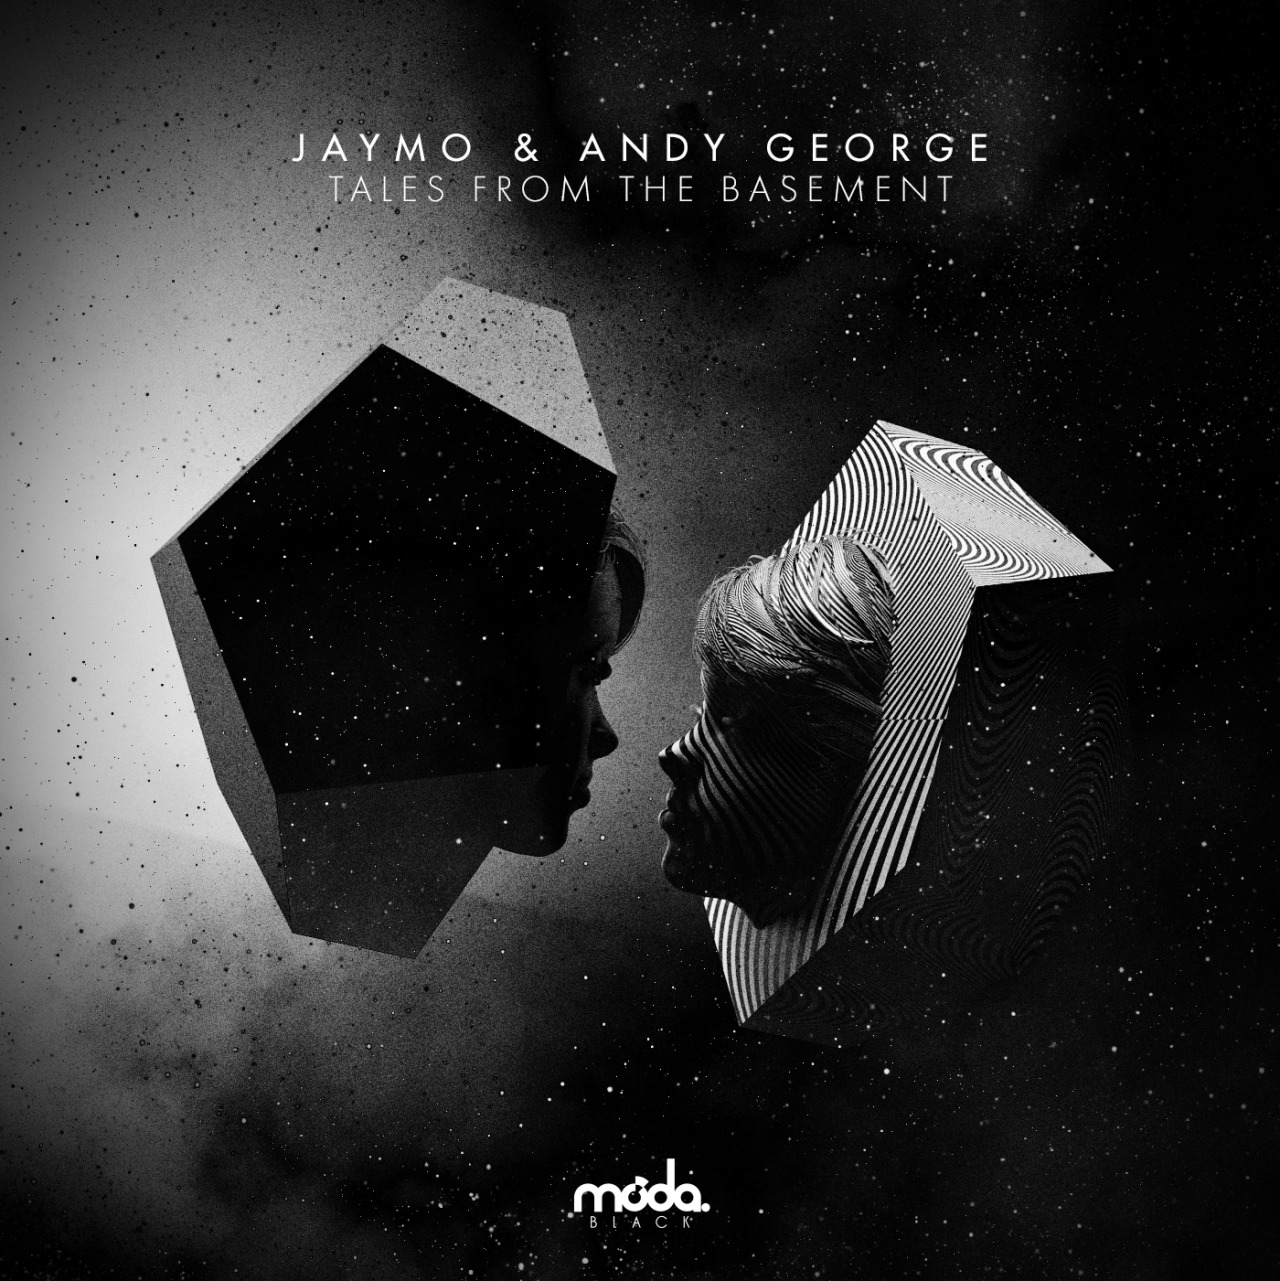 This new tune from Jaymo & Andy George is definitely my release of the week. It's big, groovy and in their words inspired by the classic house label Henry Street Music. It really is a bit of a treat. The A-side of the release, title track Tales From The Basement is more techy but also rather superb. Good work. Go buy it from iTunes; at £1.29 for *BOTH* tracks, it's a steal!